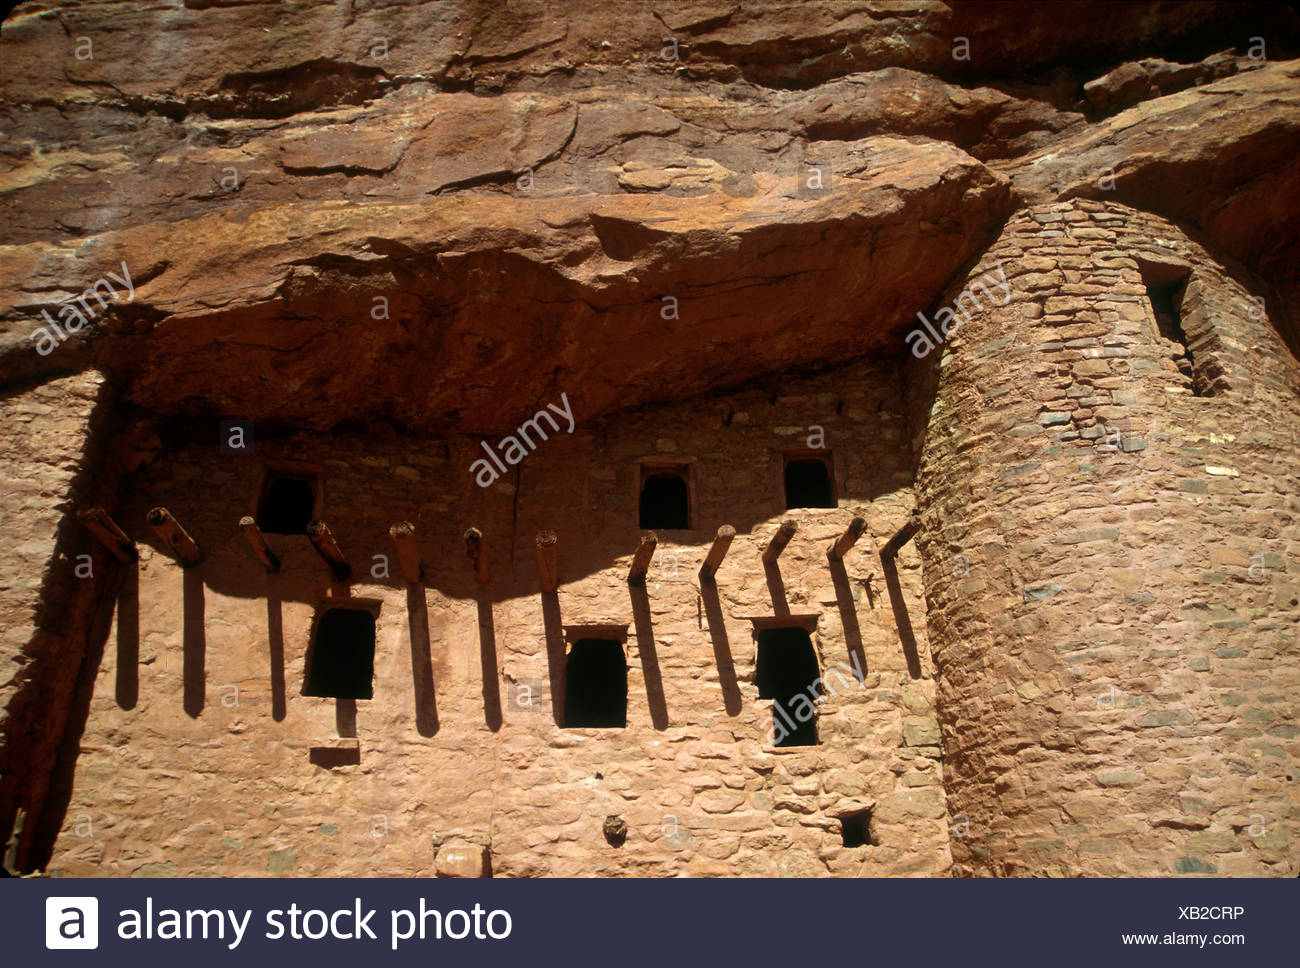 Manitou Cliff Dwellings of the Anasazi native American Indian tribe, Manitou Springs, Colorado - Stock Image